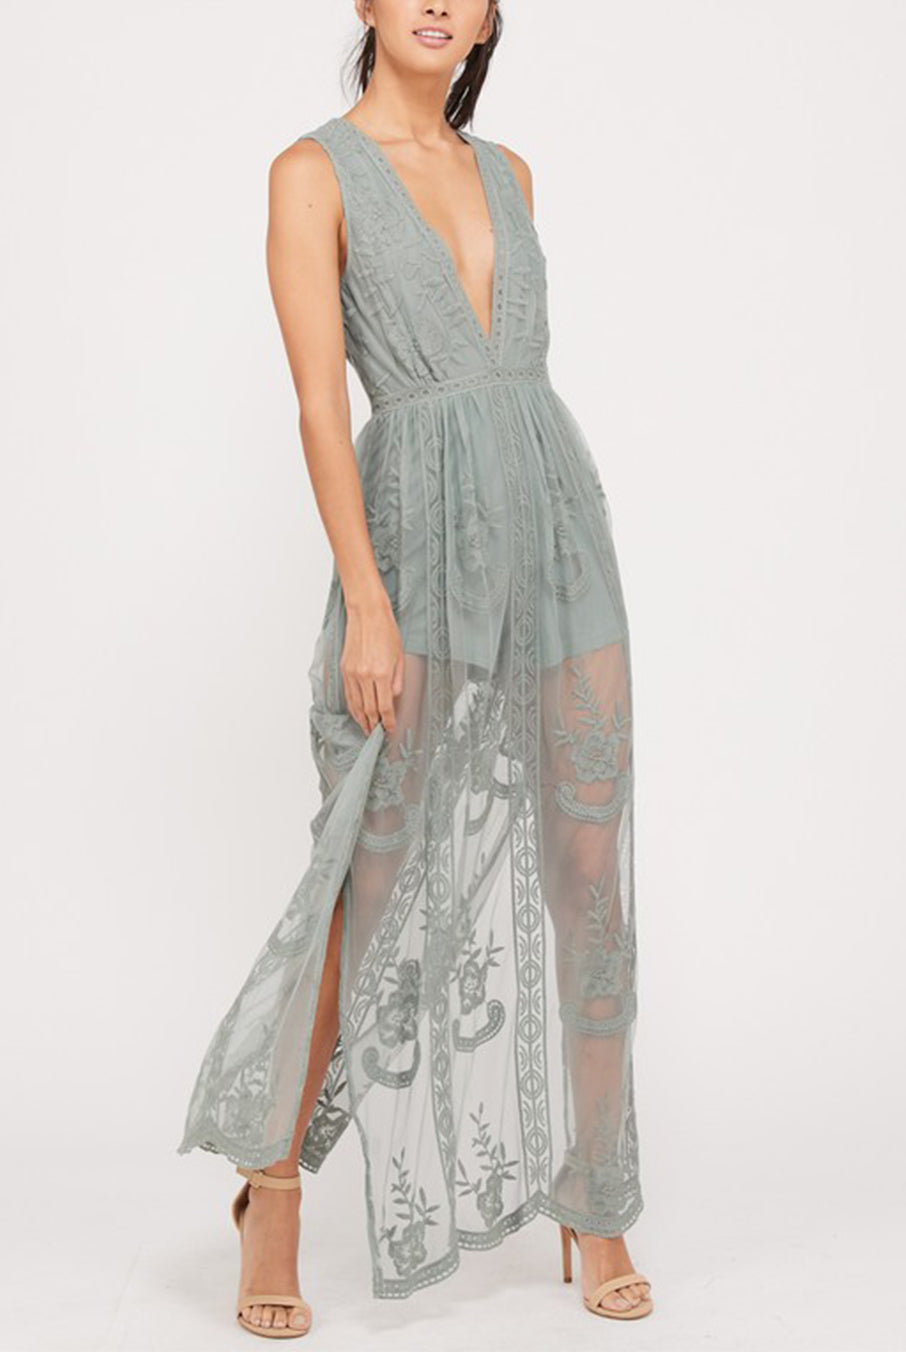 590ffd83a10 Rae Sage Embroidered Maxi Dress by Hourglass Boutique - Hourglass ...